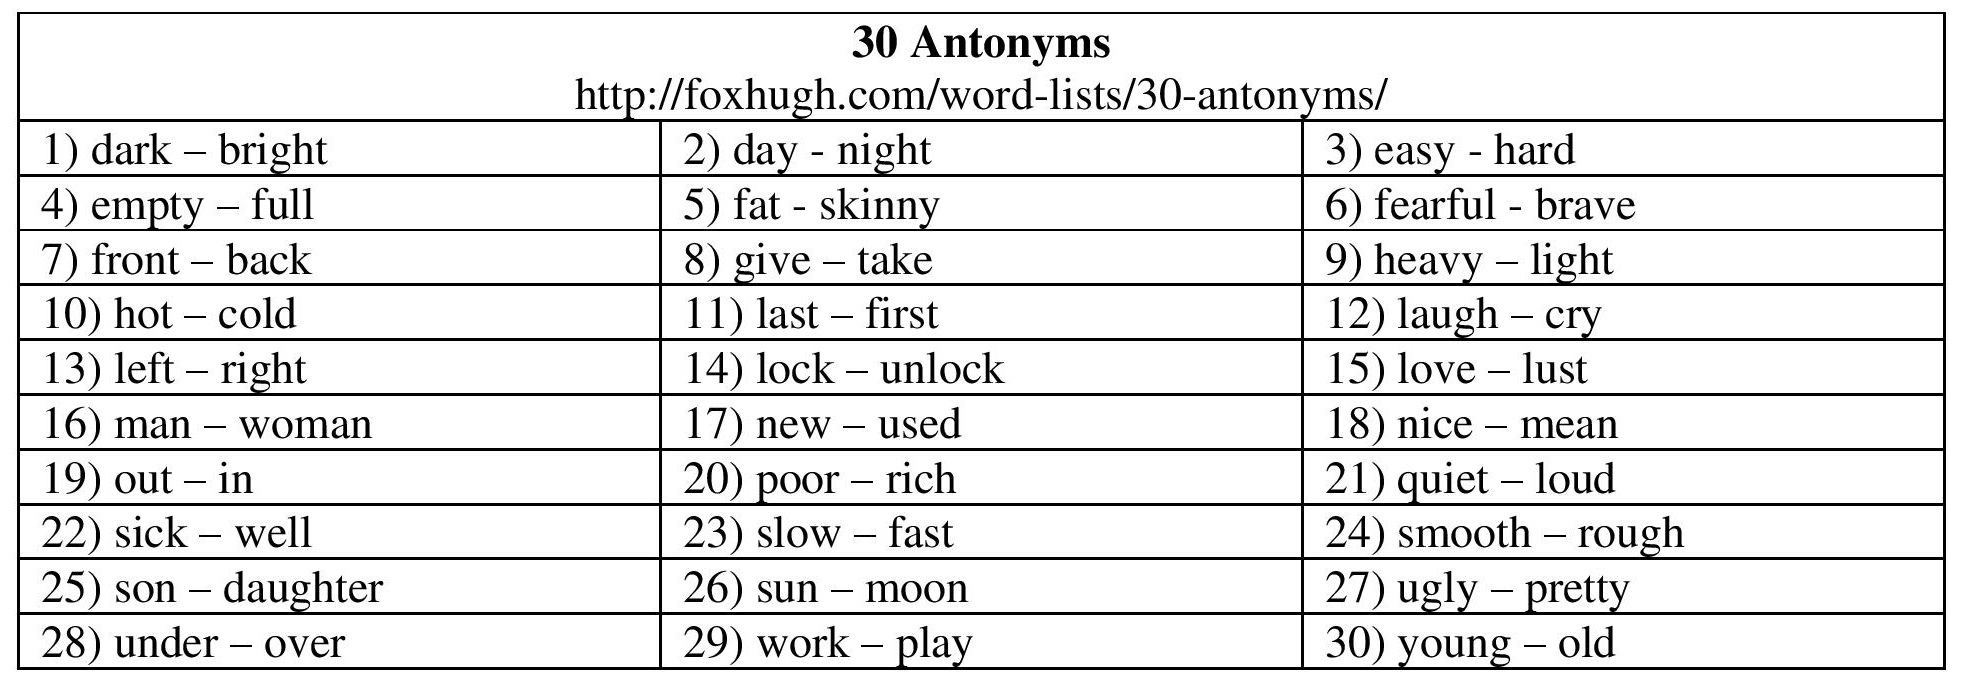 30 Antonyms | Hugh Fox III